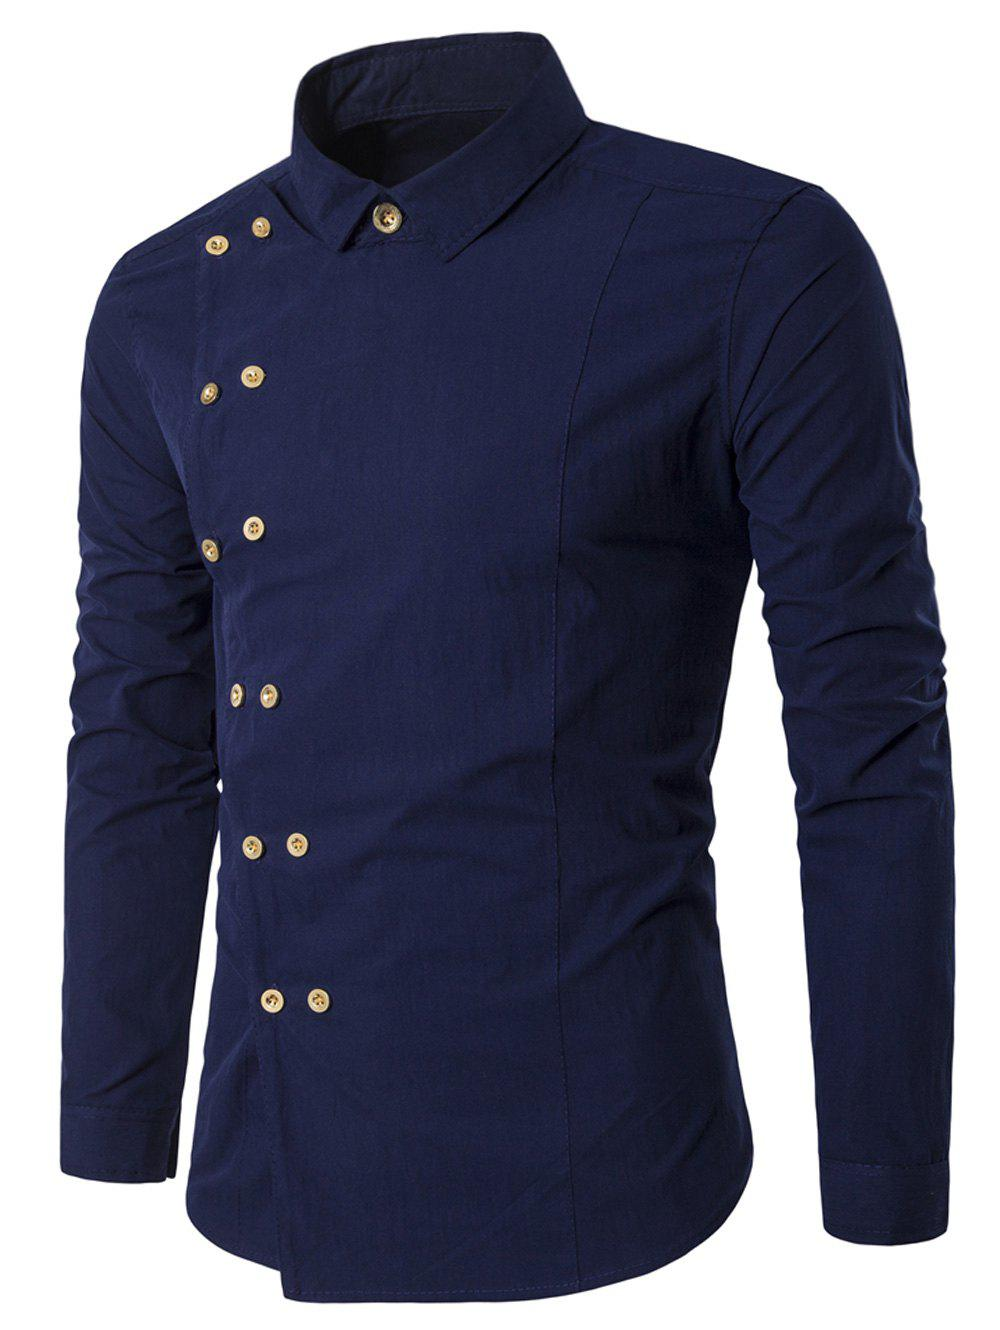 Double Breasted Turndown Collar Long Sleeve ShirtMEN<br><br>Size: 2XL; Color: CADETBLUE; Shirts Type: Casual Shirts; Material: Cotton,Polyester; Sleeve Length: Full; Collar: Turndown Collar; Pattern Type: Solid; Weight: 0.1900kg; Package Contents: 1 x Shirt;